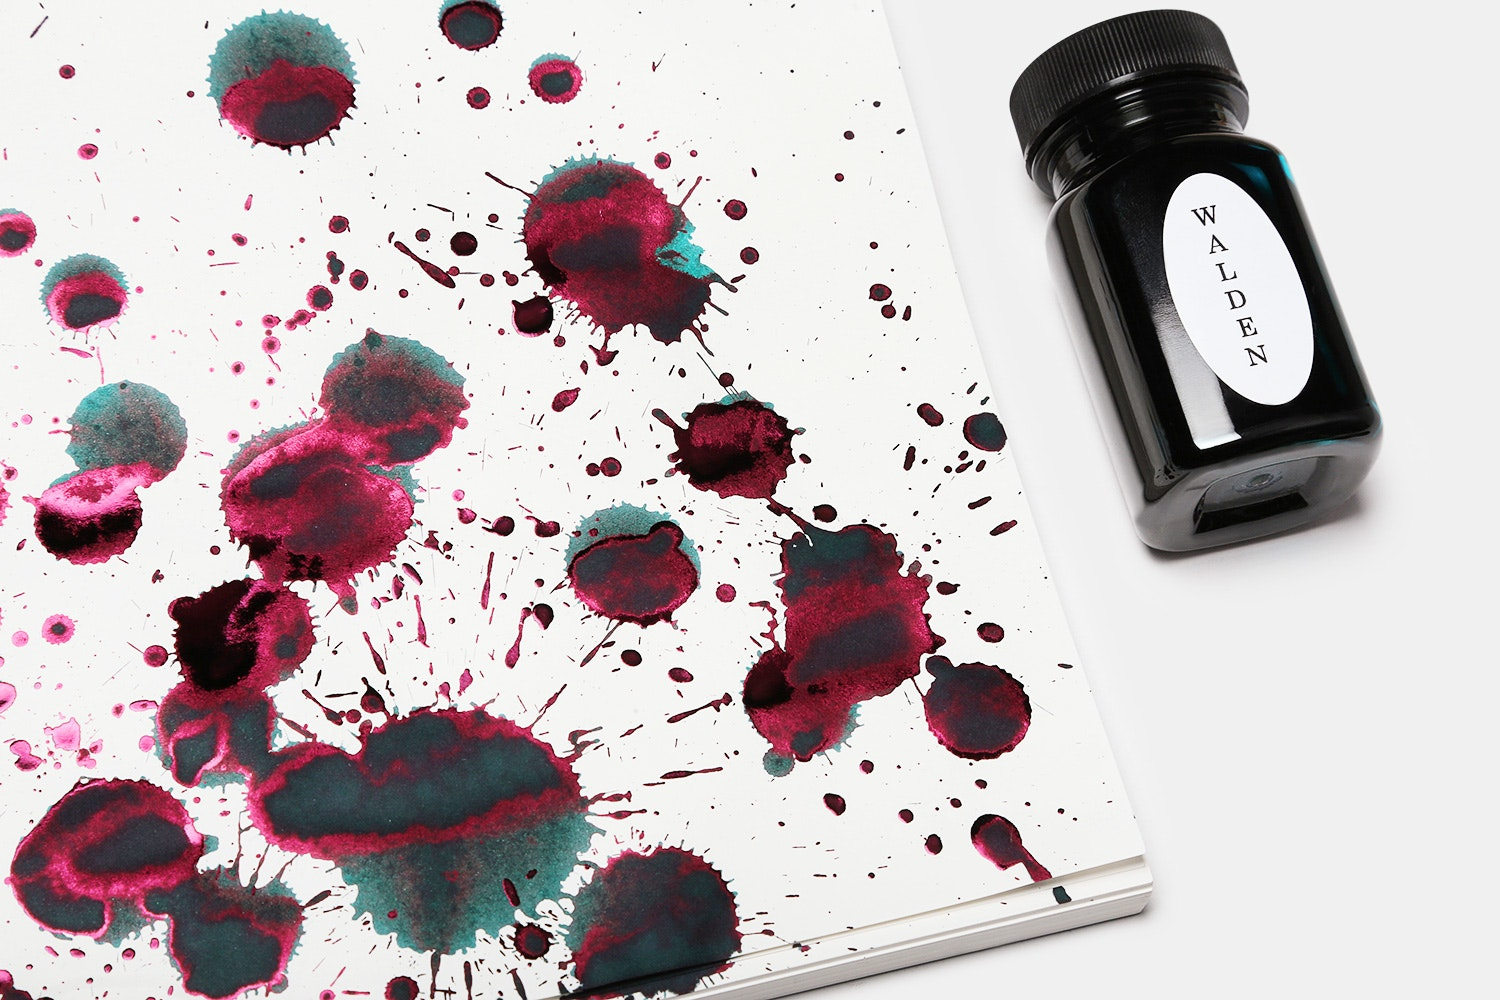 Organics Studio Walden Pond Ink